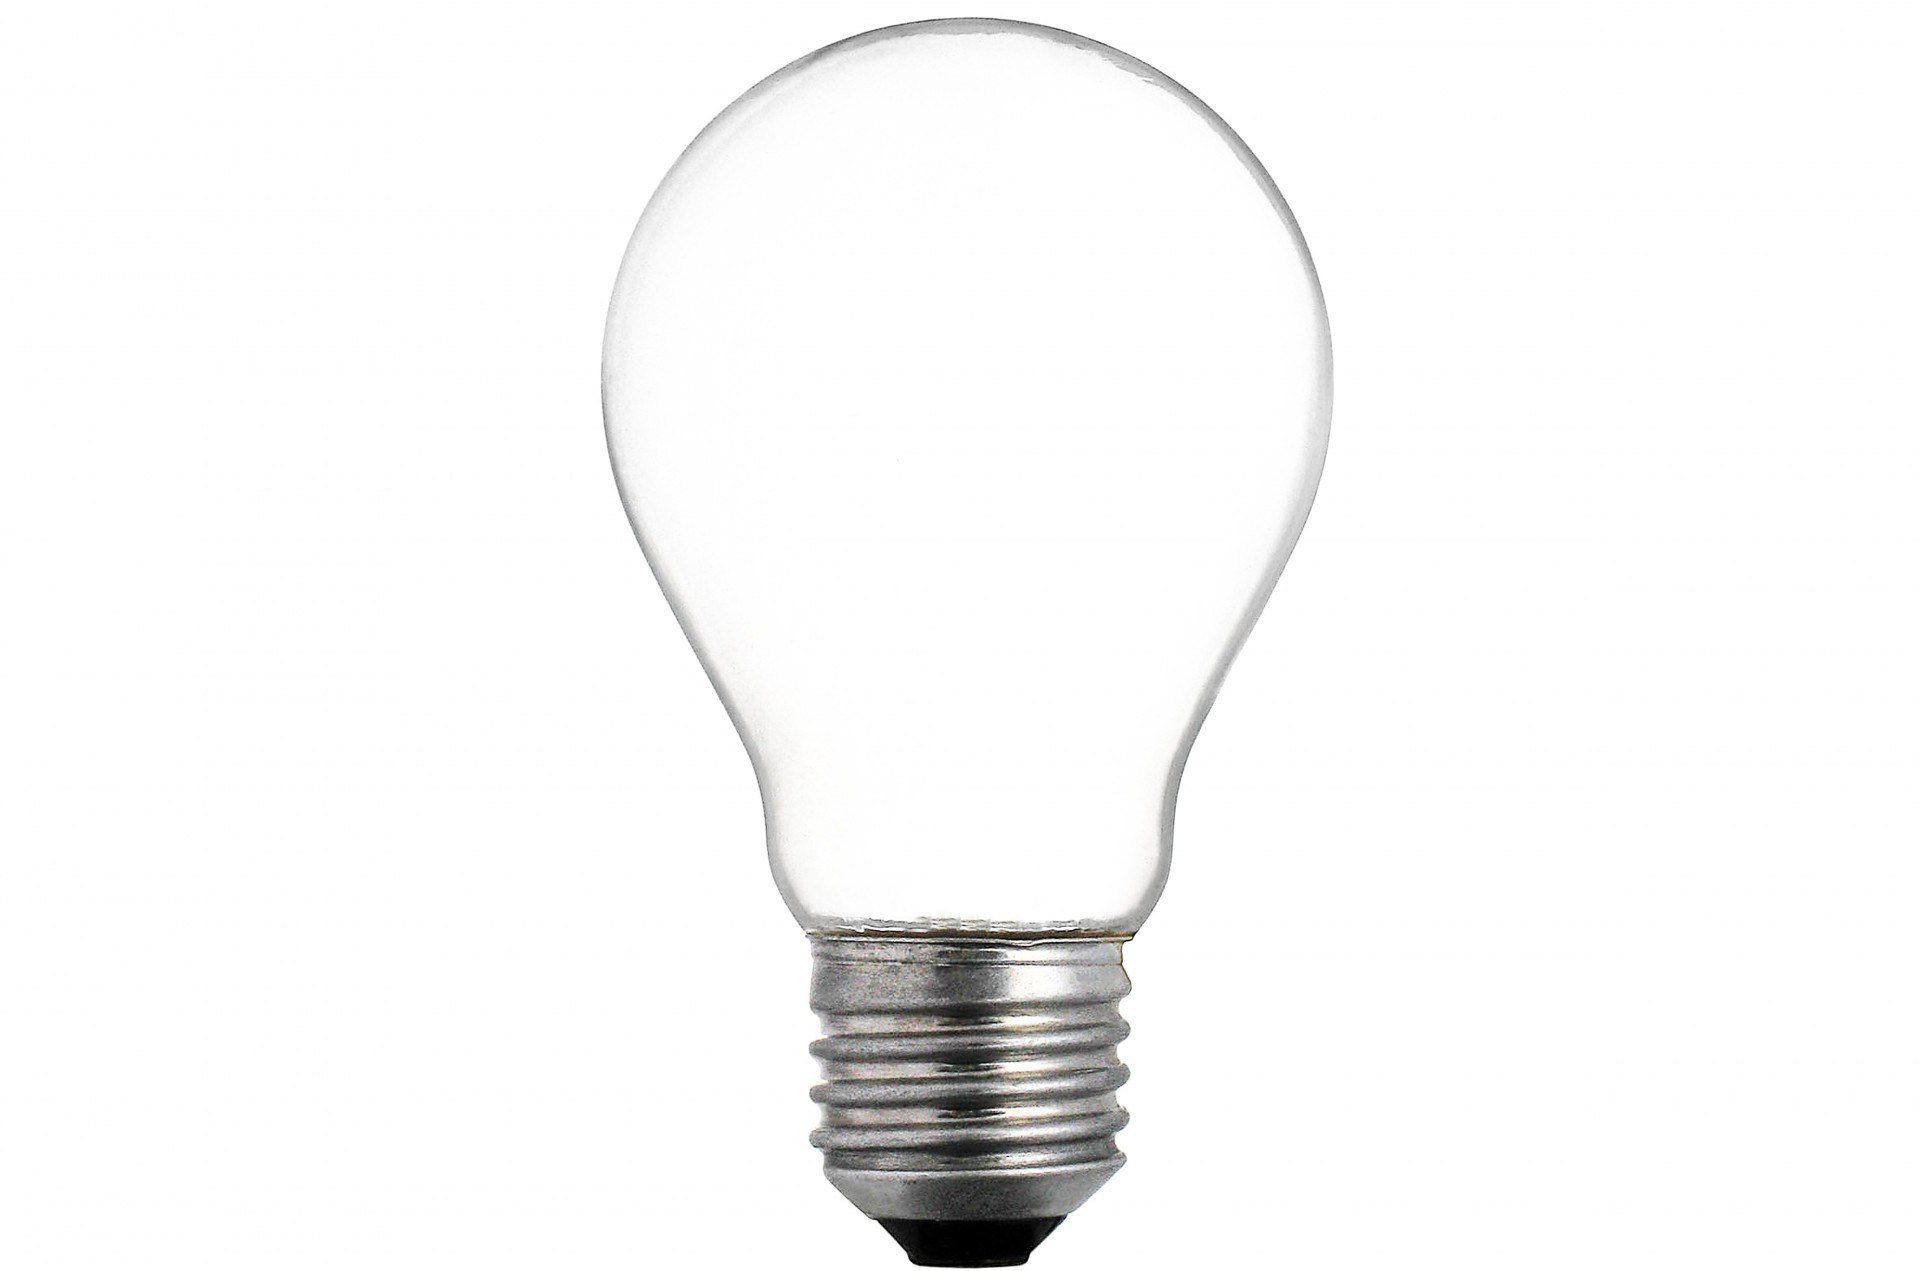 Empty Electric Light Bulb Free Stock Photo